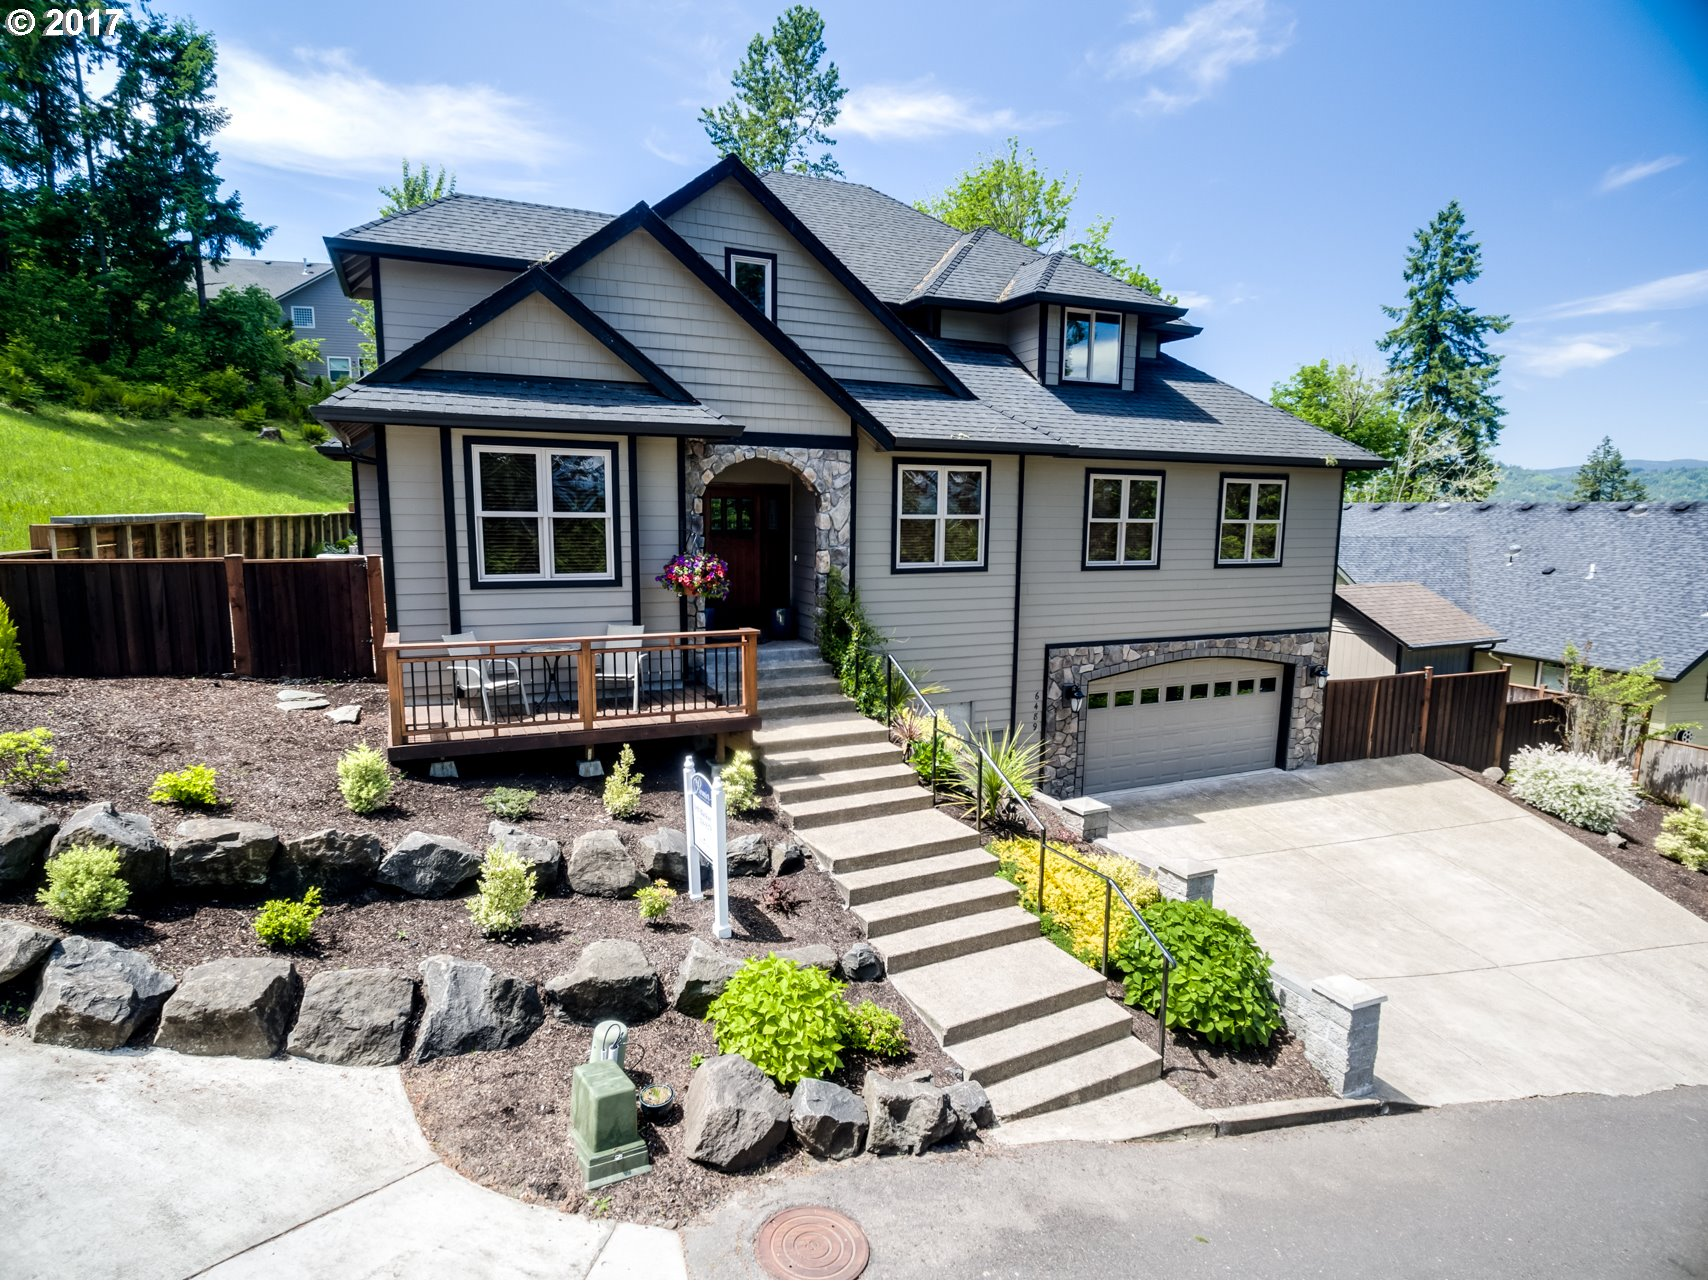 6489 DOGWOOD ST, Springfield, OR 97478